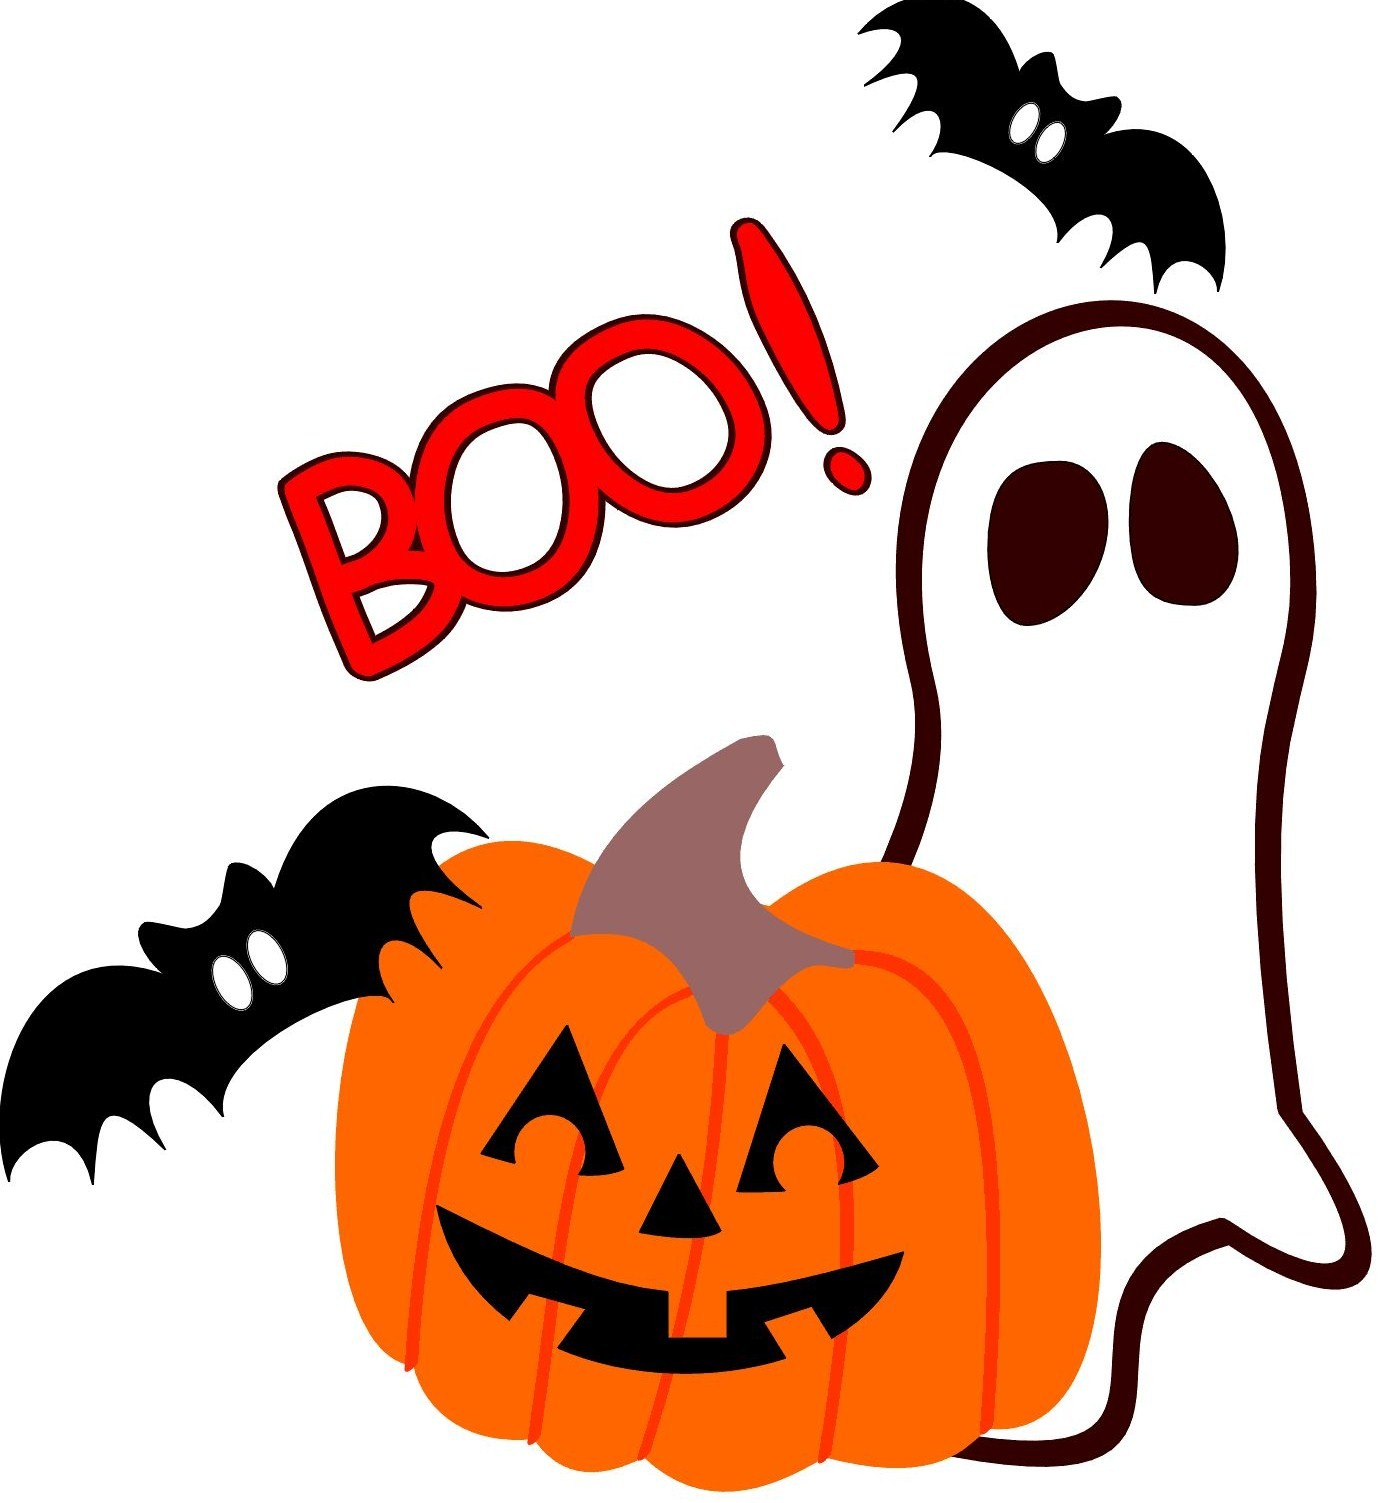 halloween image clipart - photo #2